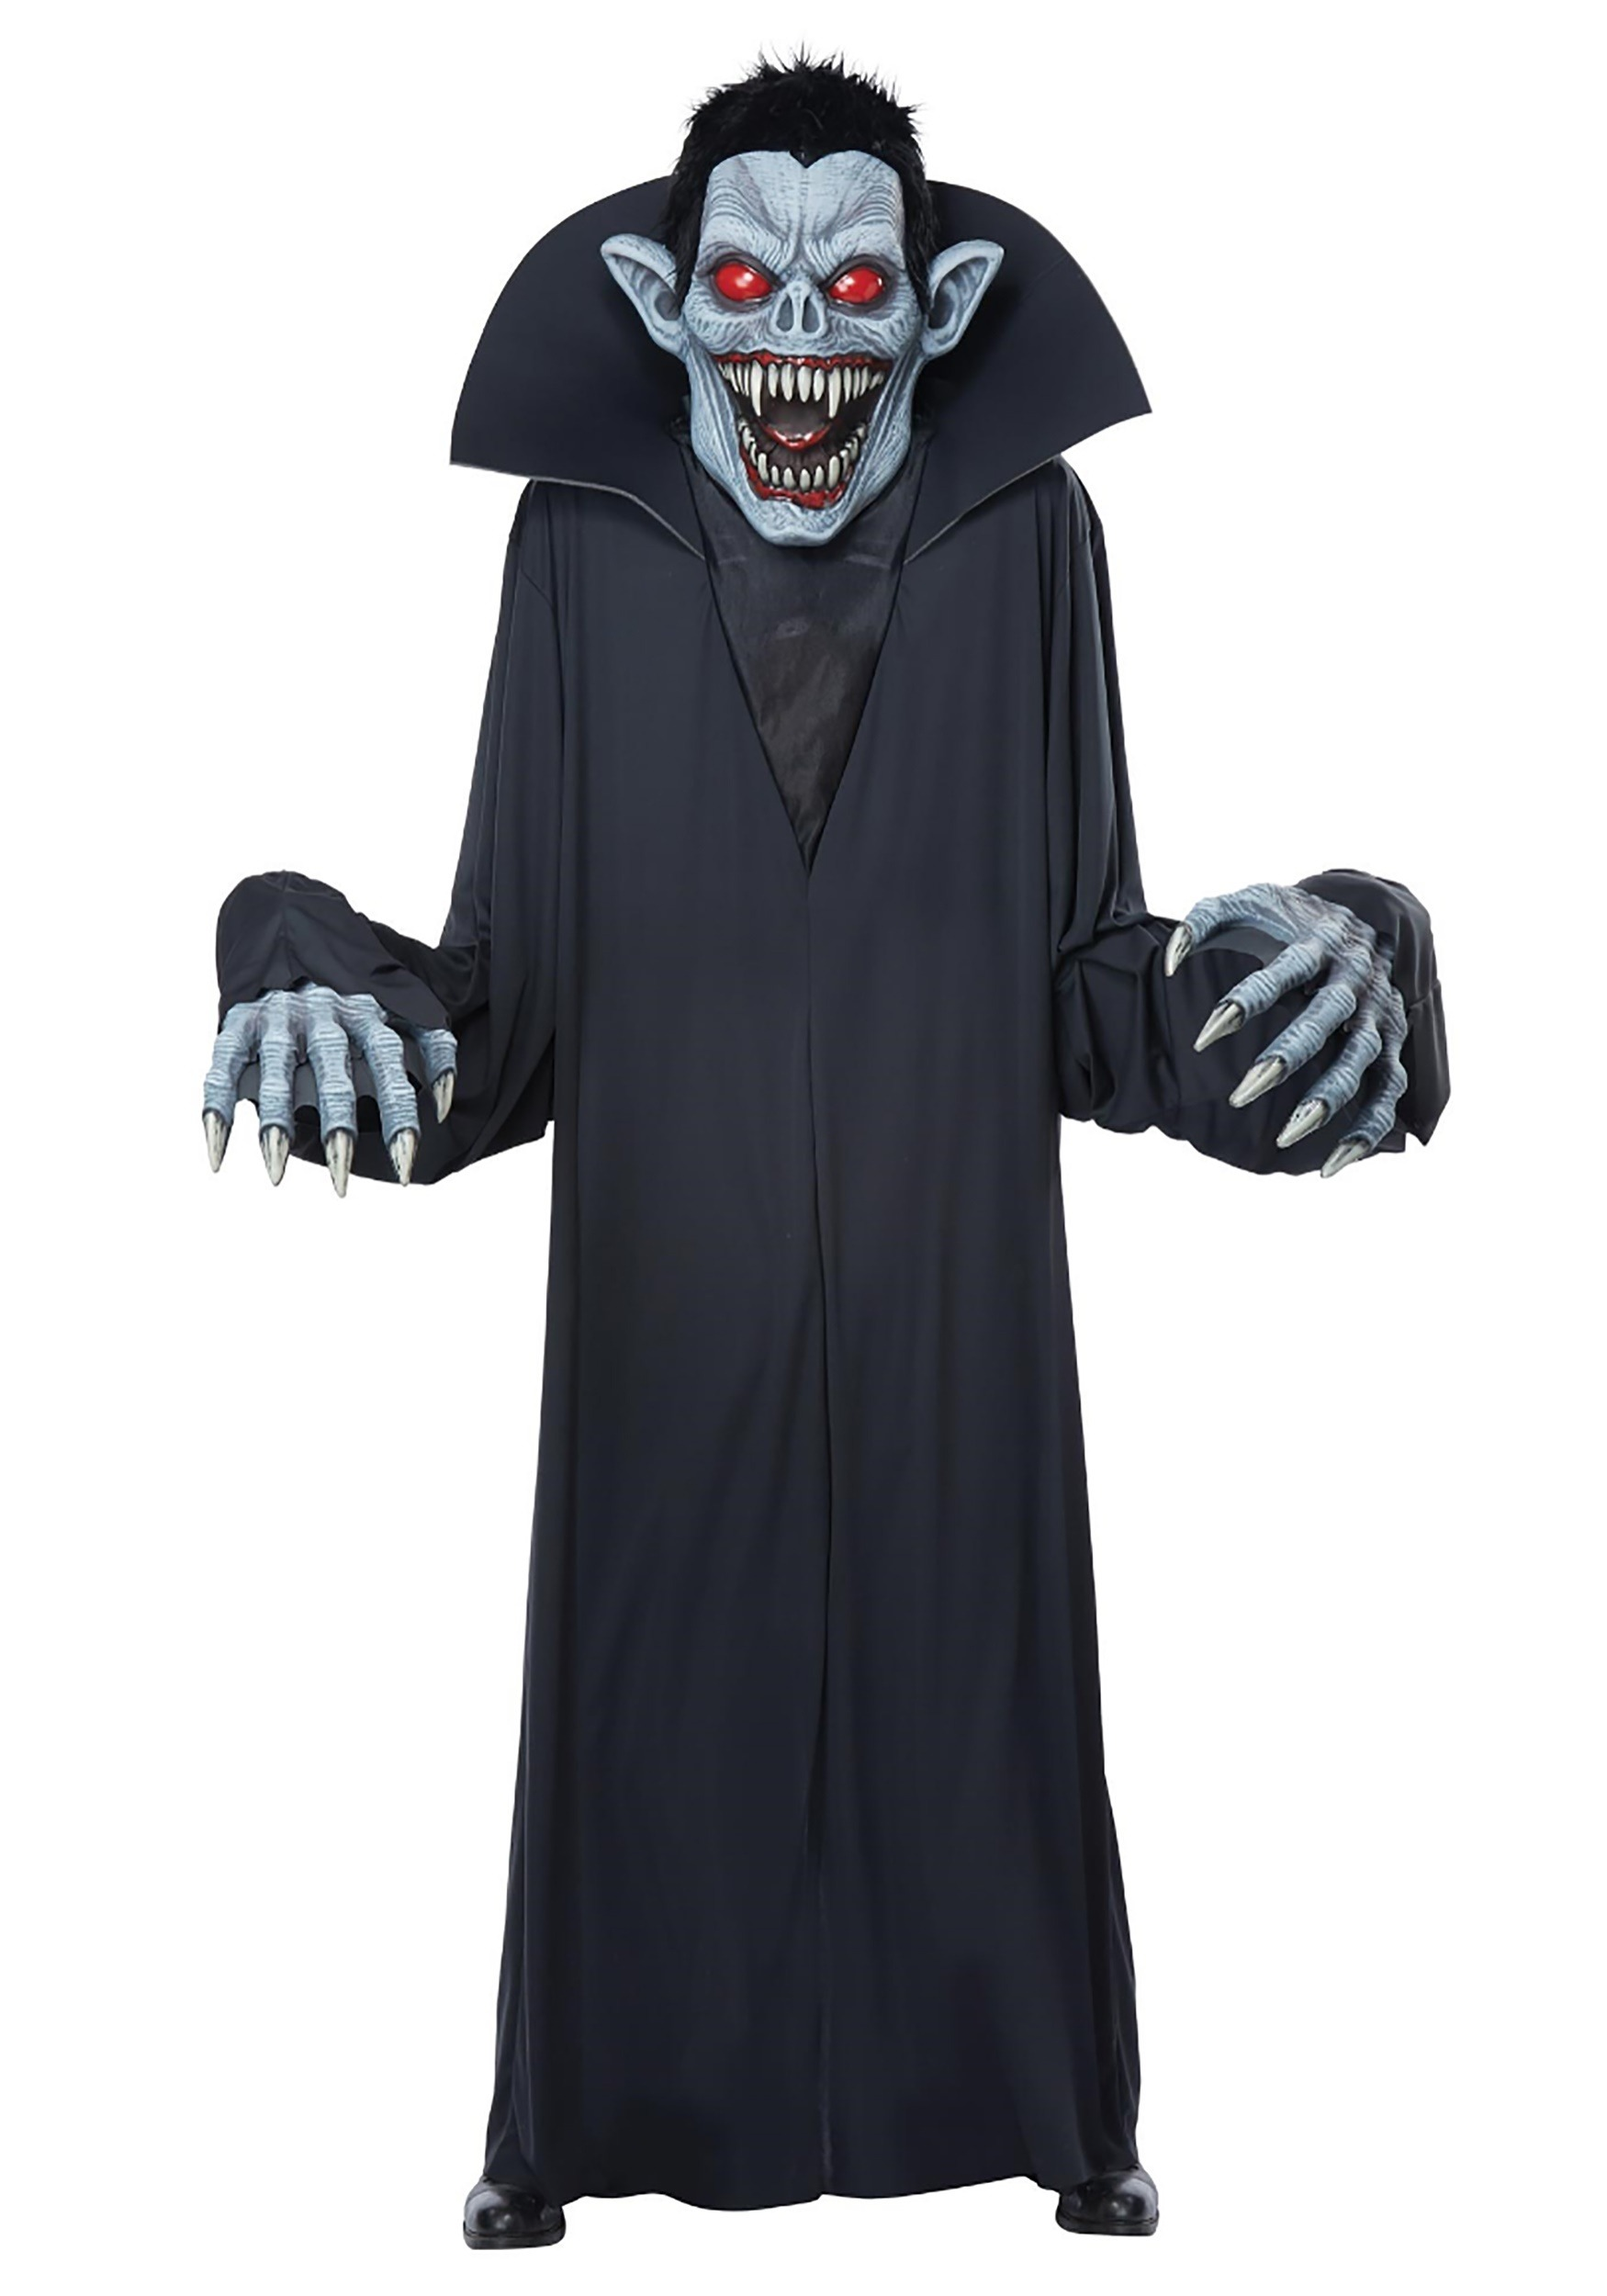 towering terror vampire costume for adults. Black Bedroom Furniture Sets. Home Design Ideas